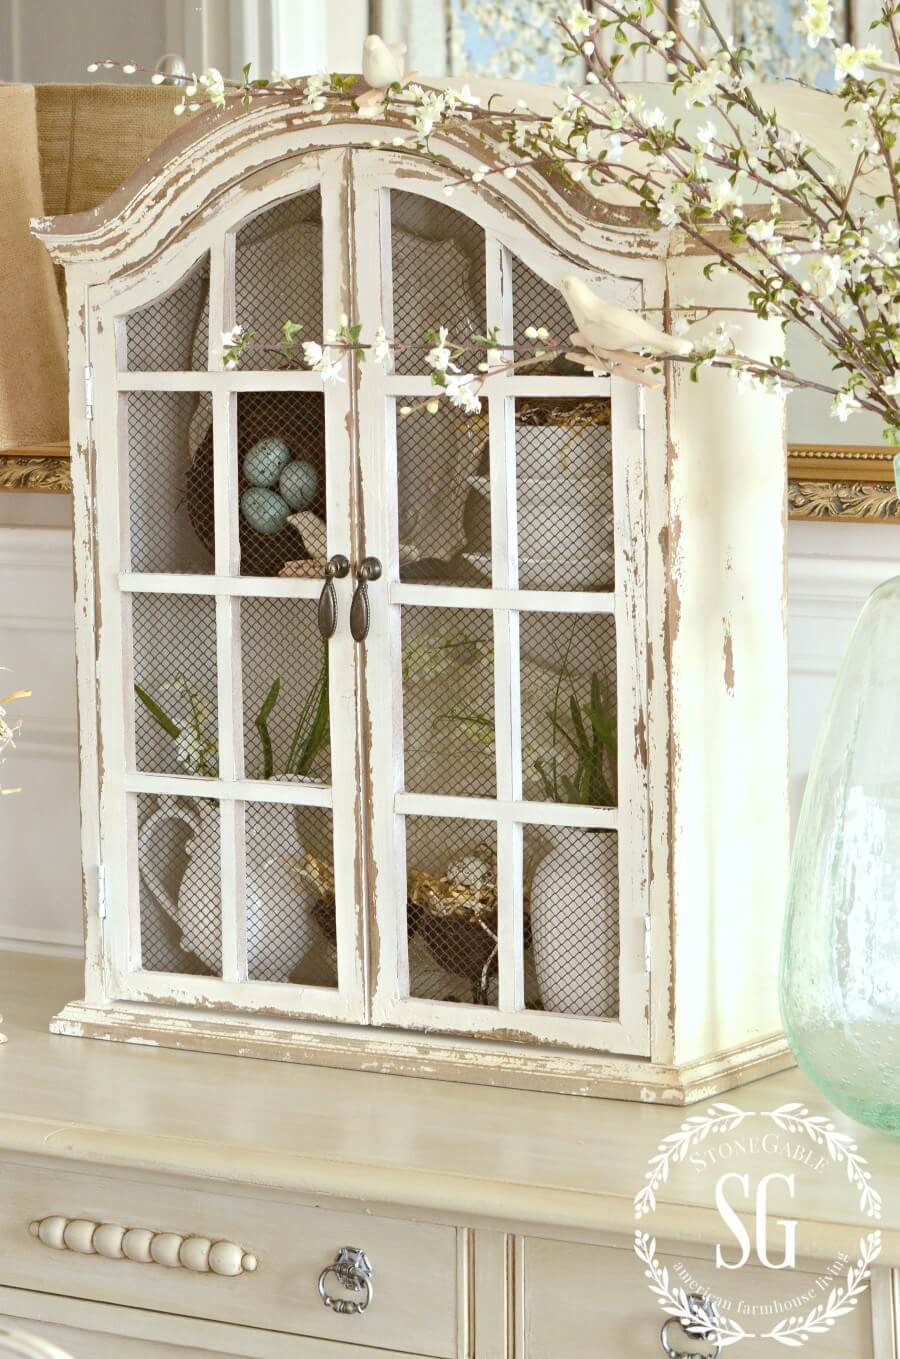 Rustic Cabinet with Flower Arrangements